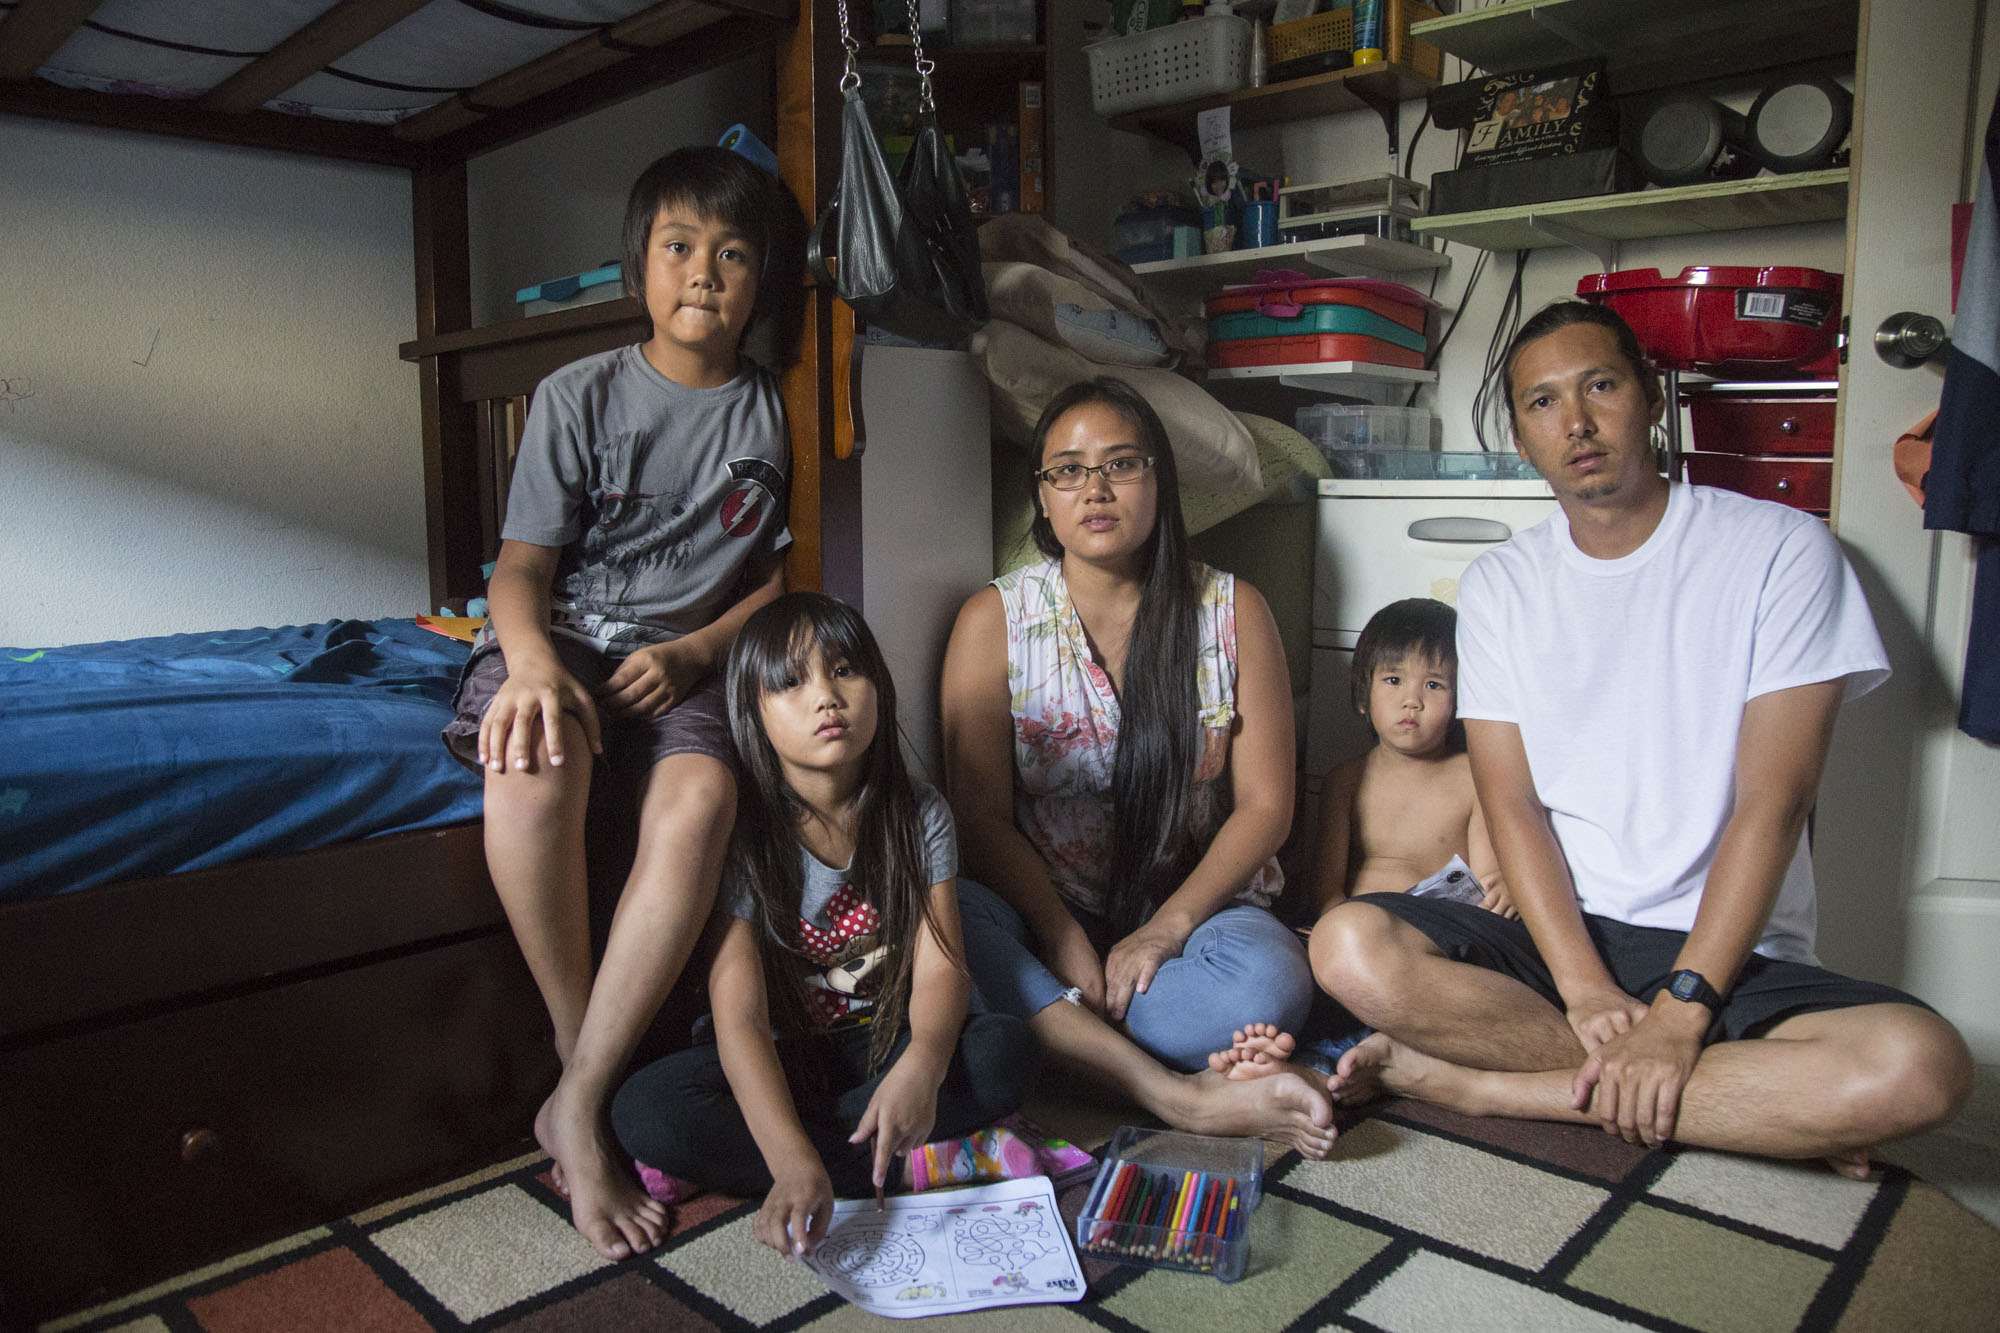 "Tyler Okamura Tagupa and Ashley Lata pose for a portrait with their children, Rev, Erin, and Levi, in the small bedroom they all share. They moved to Lataʻs family home in Ewa Beach, Hawaiʻi, earlier this year in March to save money. Their three children share the bunkbed while the couple sleep together on a floor mattress. ""Living with 14 people was a culture shock at first. This is Ashleyʻs family home, but I only grew up with my mom as an only child. We live with her mom and dad, two sisters, their kids, and our kids. Her grandma used to be here too. Itʻs a little hard because weʻre a big family of five, but weʻre saving two or three grand every month in savings to put down for our own place. If we stay home, we can find somewhere we like and not get stuck in a contract. Itʻs possible to get ahead in Hawaiʻi, but the cost of living doesnʻt help. Right now, my annual salary is around a low $61-62,000 and I have a family of five,"" Tagupa says. An annual income of $96,000 is considered low income in Hawai'i for a family of four. The Tagupa family is planning on moving into their own home later this year."